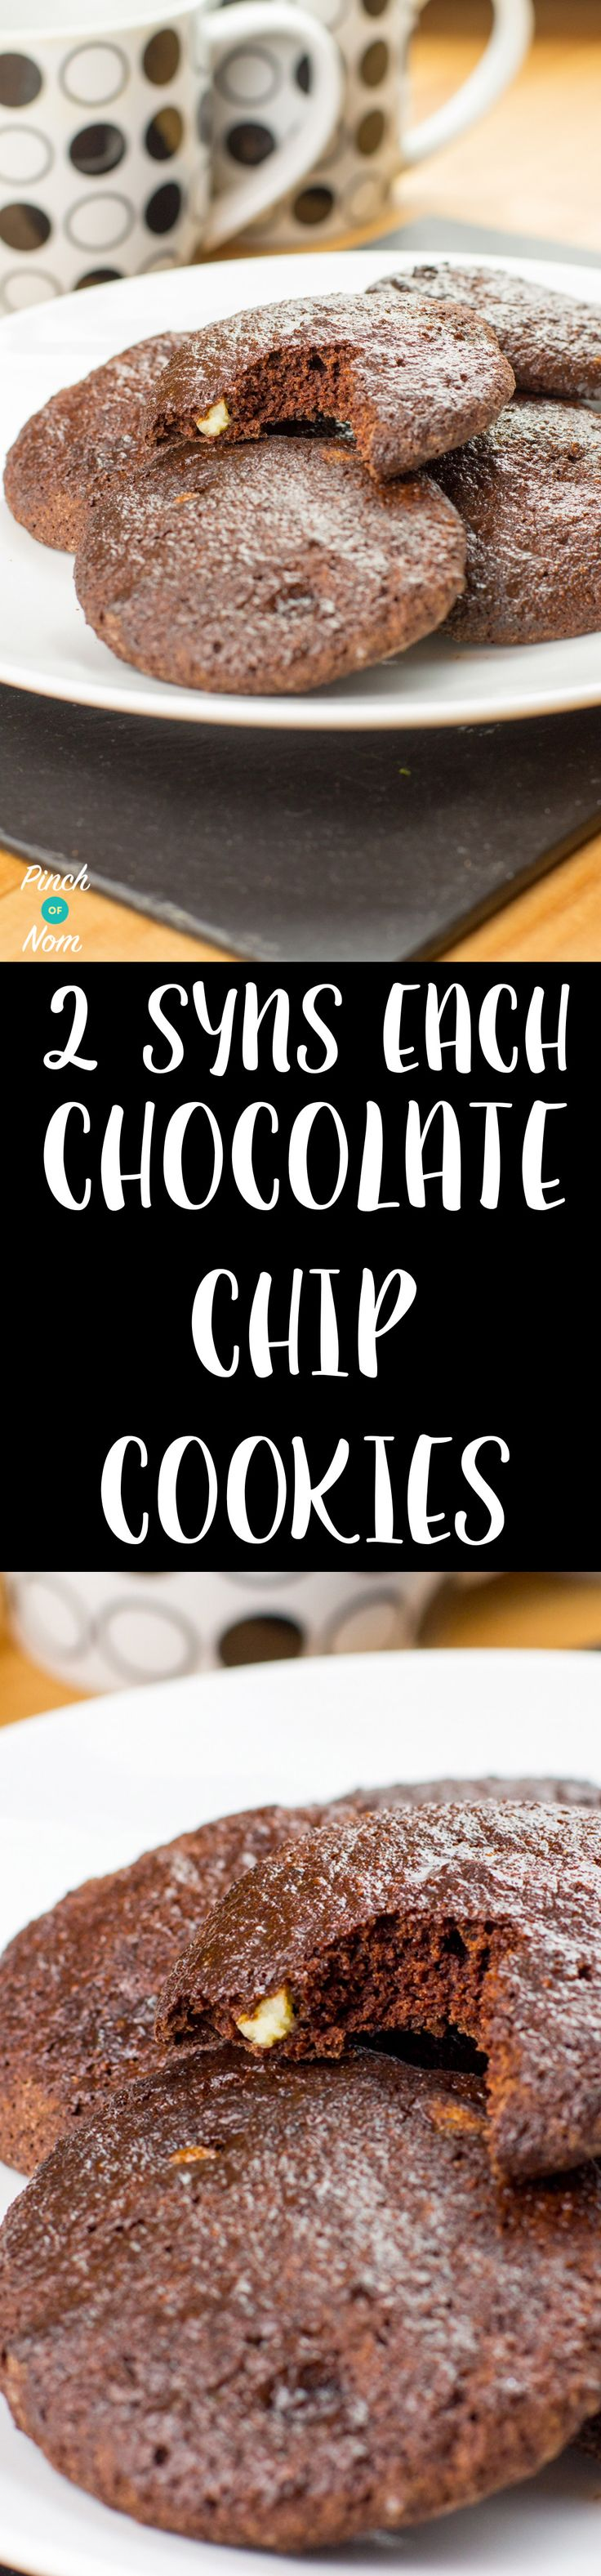 2 Syn Double Choc Chip Cookies | Slimming World | pinnchofnom.com